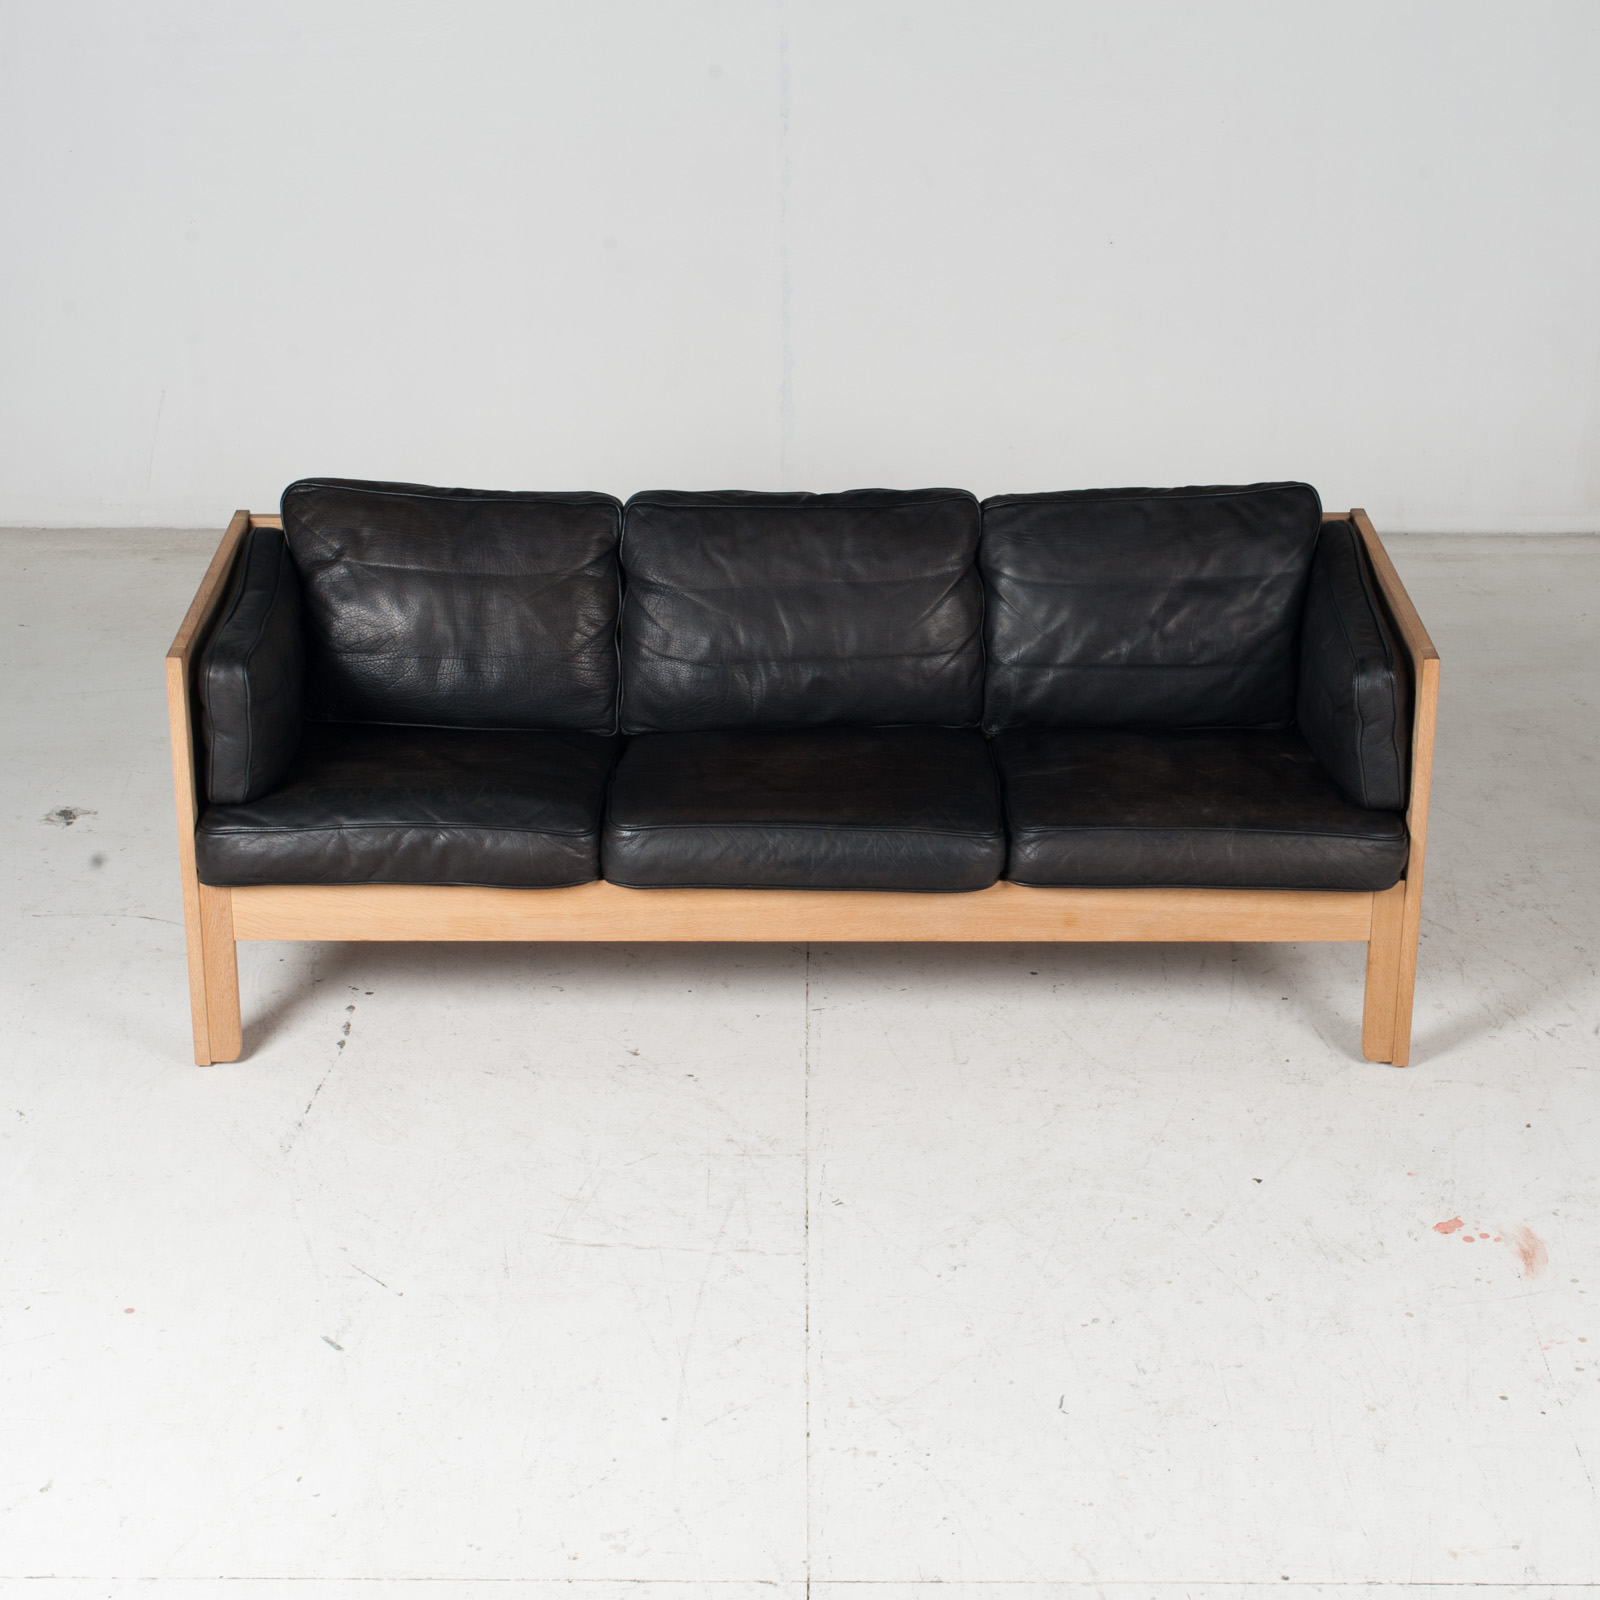 3 Seat Sofa By Borge Mogensen For Frederica In Black Leather And Oak, 1960s, Denmark 3